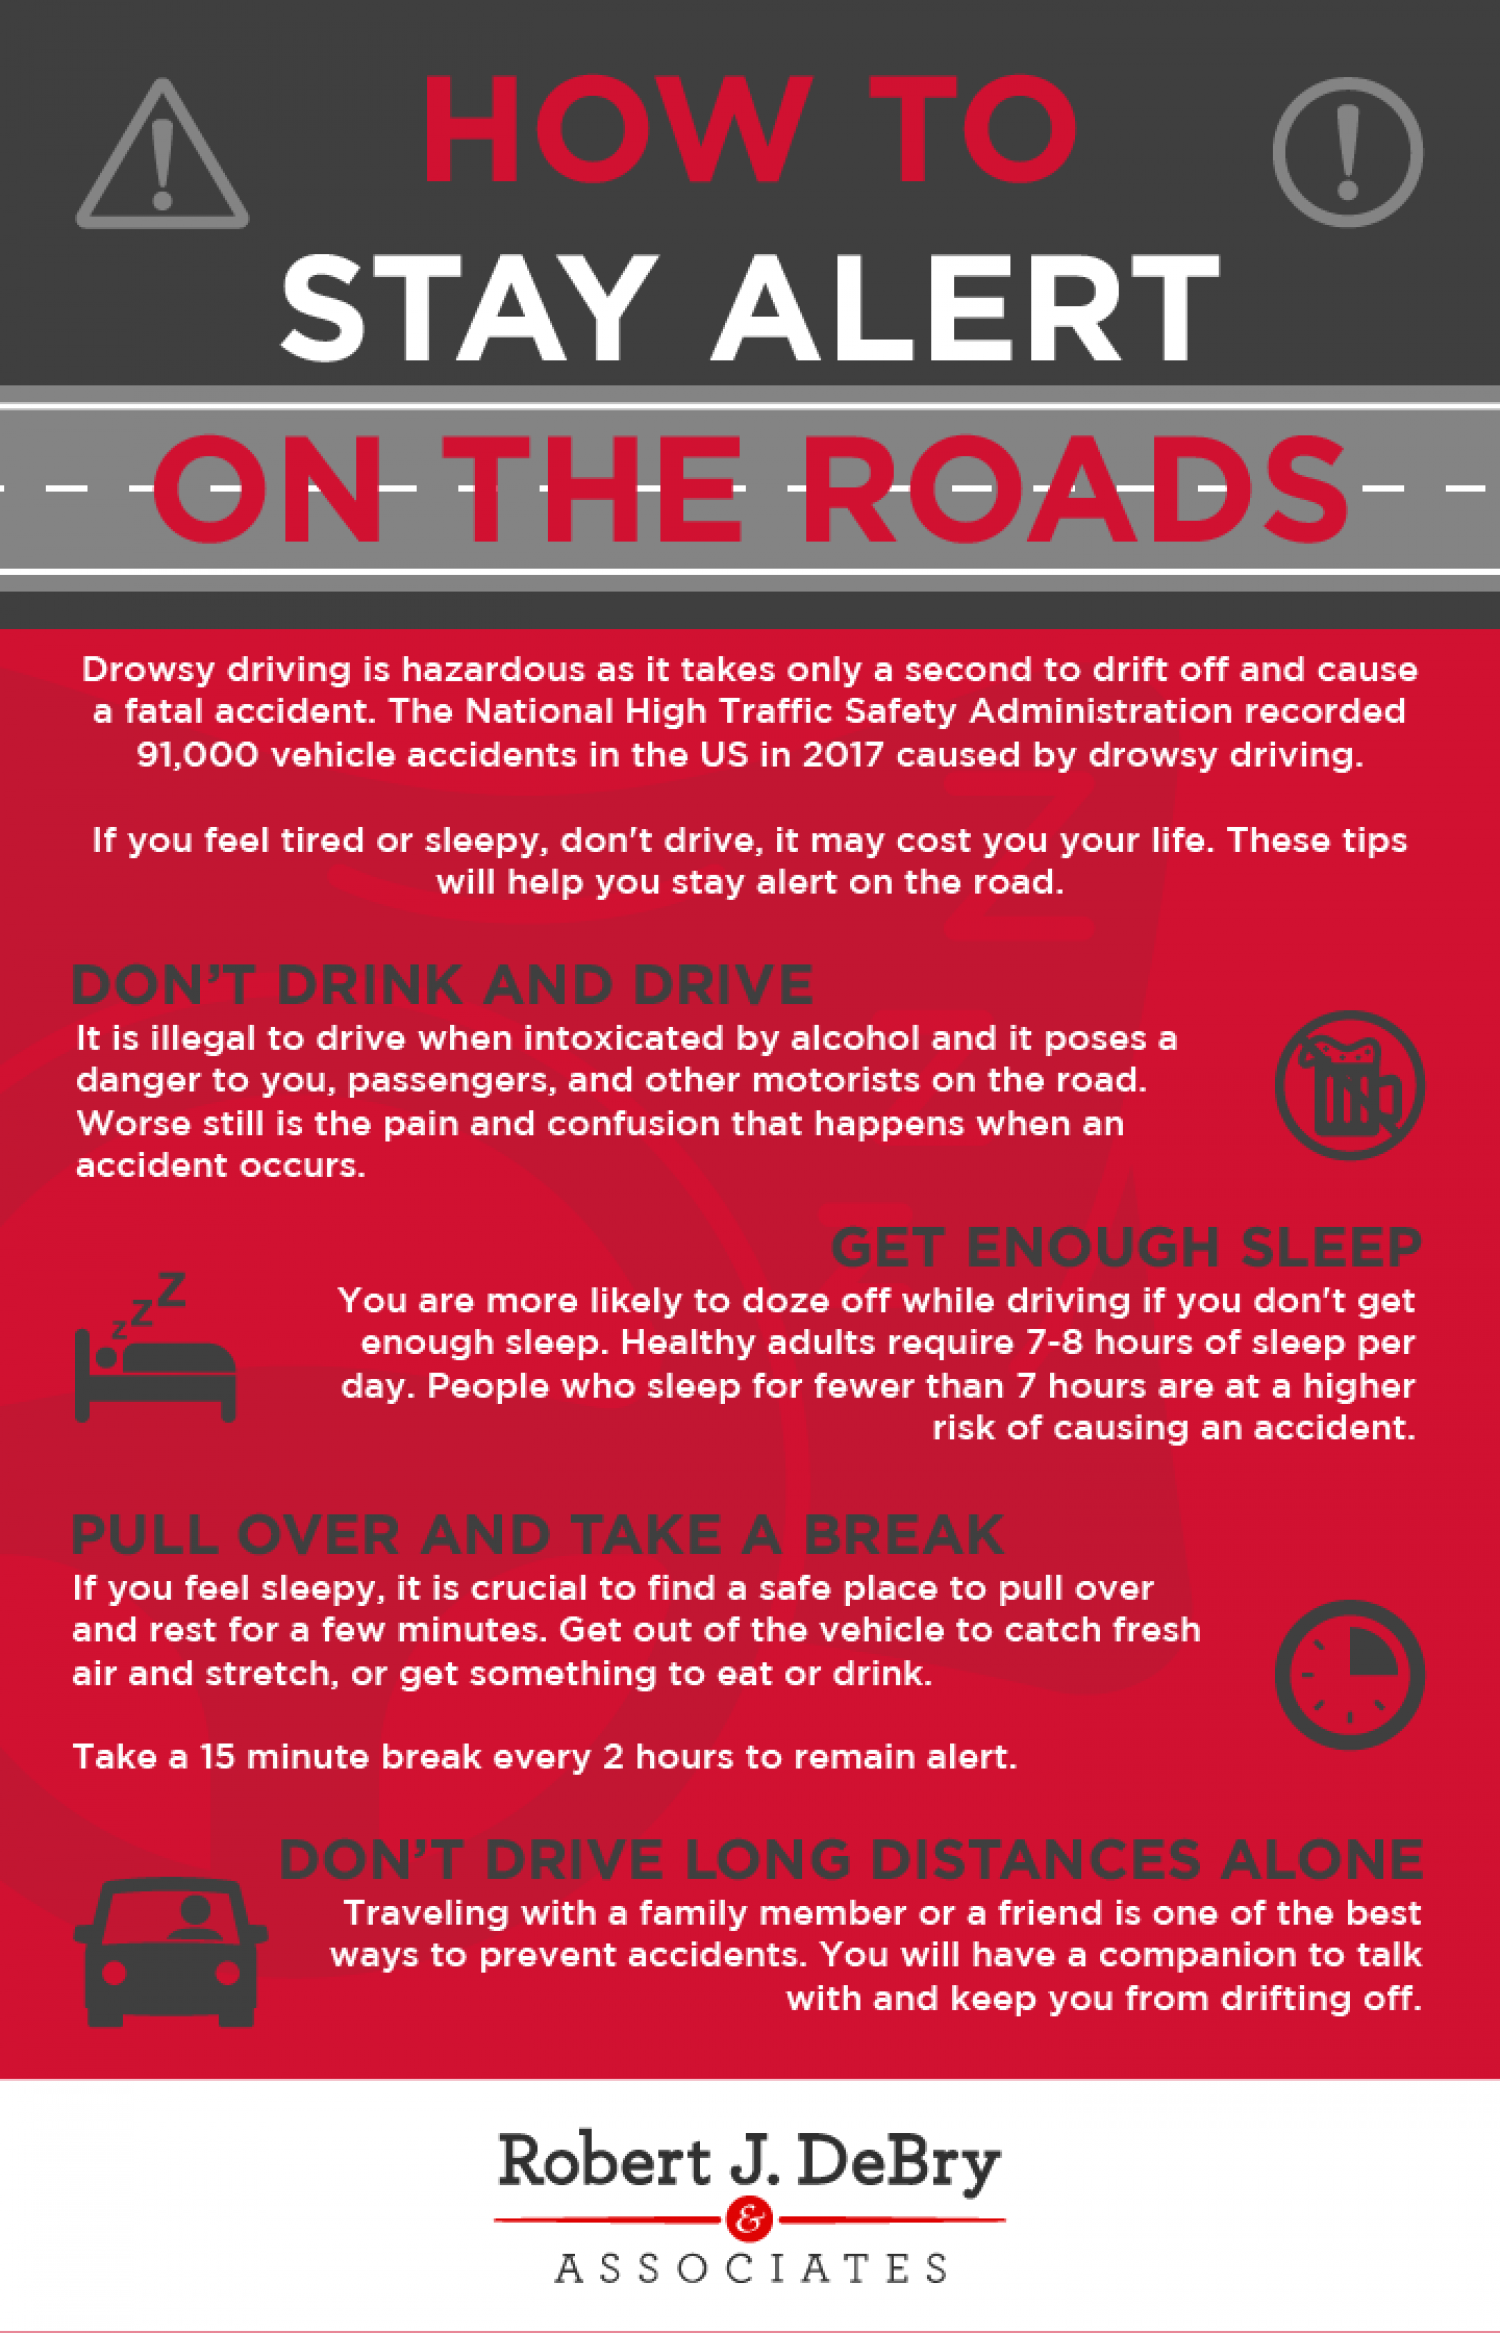 How to Stay Alert on The Roads Infographic